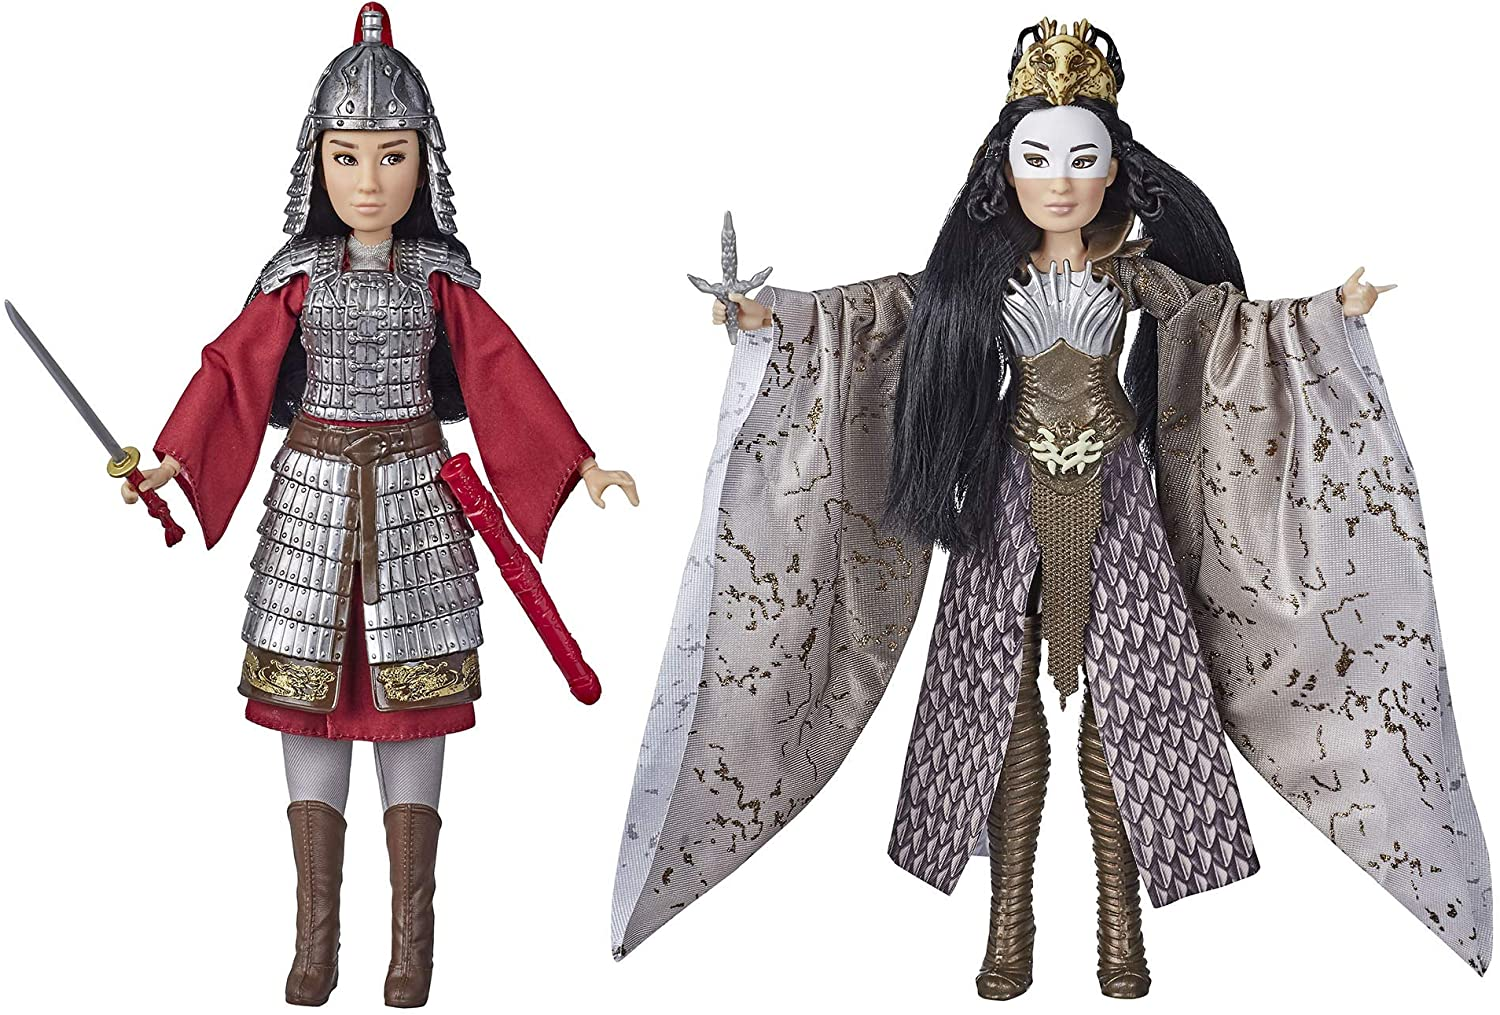 Amazon Com Disney Mulan And Xianniang Dolls With Helmet Armor And Sword Inspired By Disney S Mulan Movie Toy For Kids And Collectors Toys Games